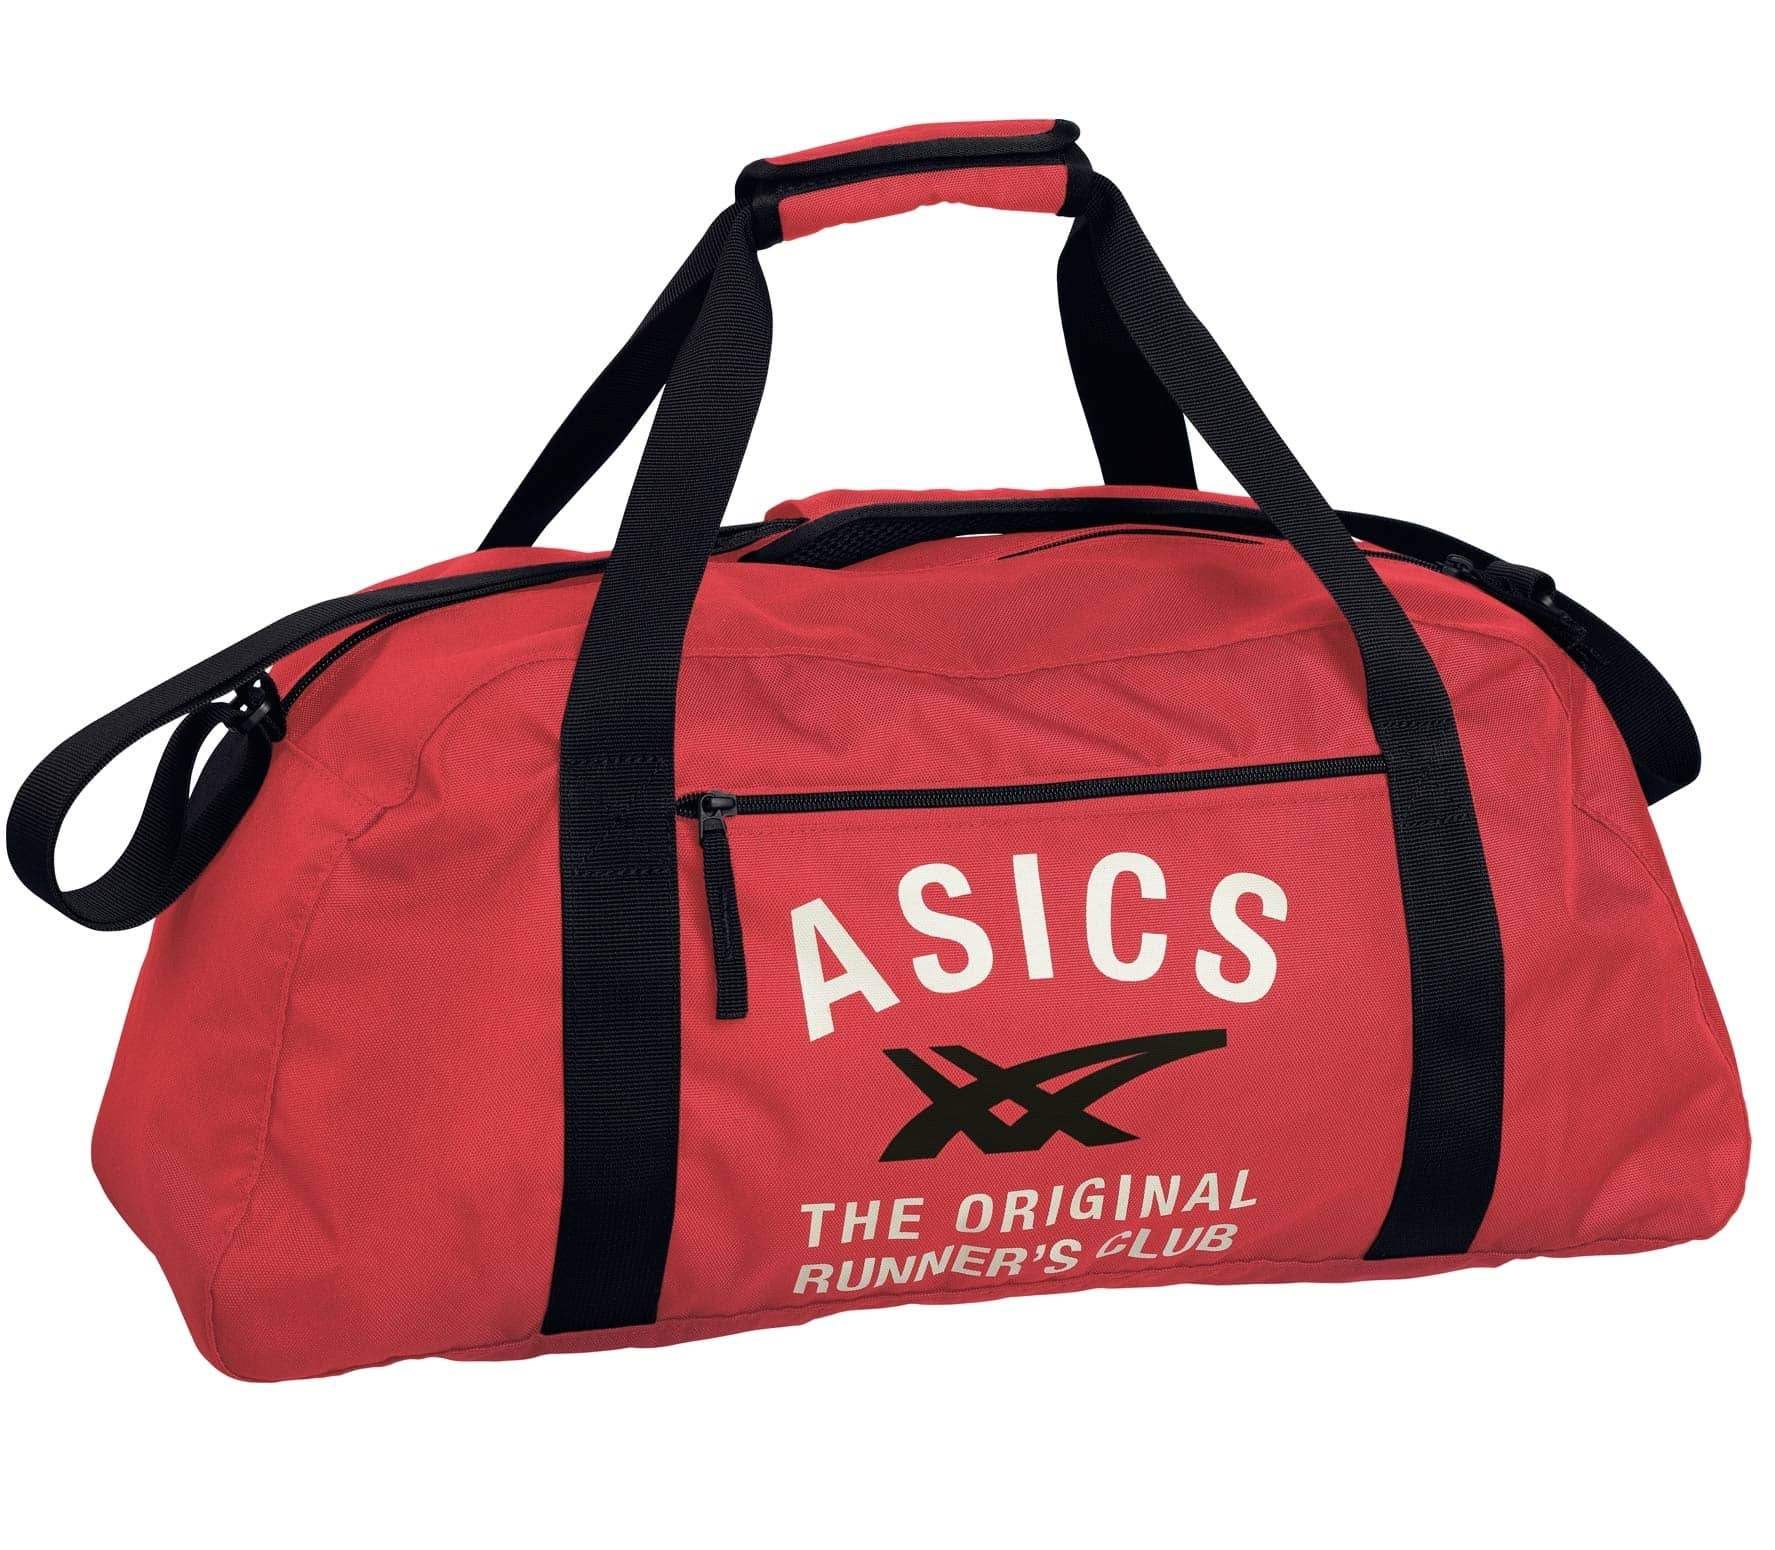 3198a03c016 Asics - Training Bag (red) - buy it at the Keller Sports online shop